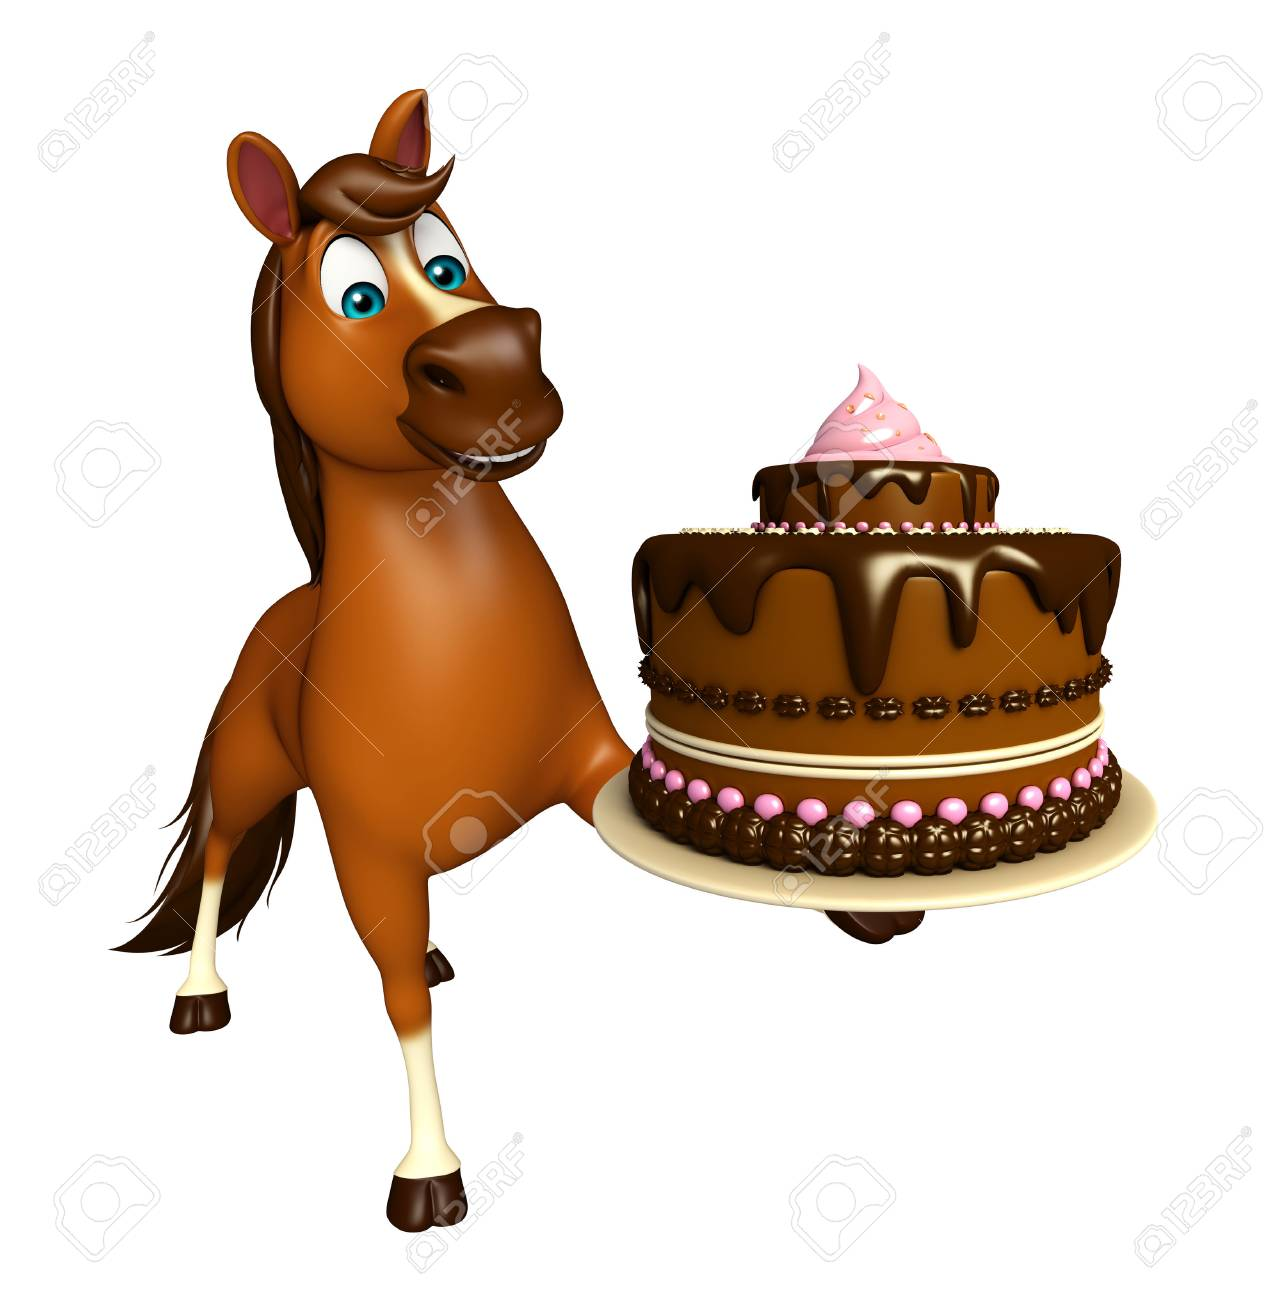 3d Rendered Illustration Of Horse Cartoon Character With Cake Stock Photo Picture And Royalty Free Image Image 53247663